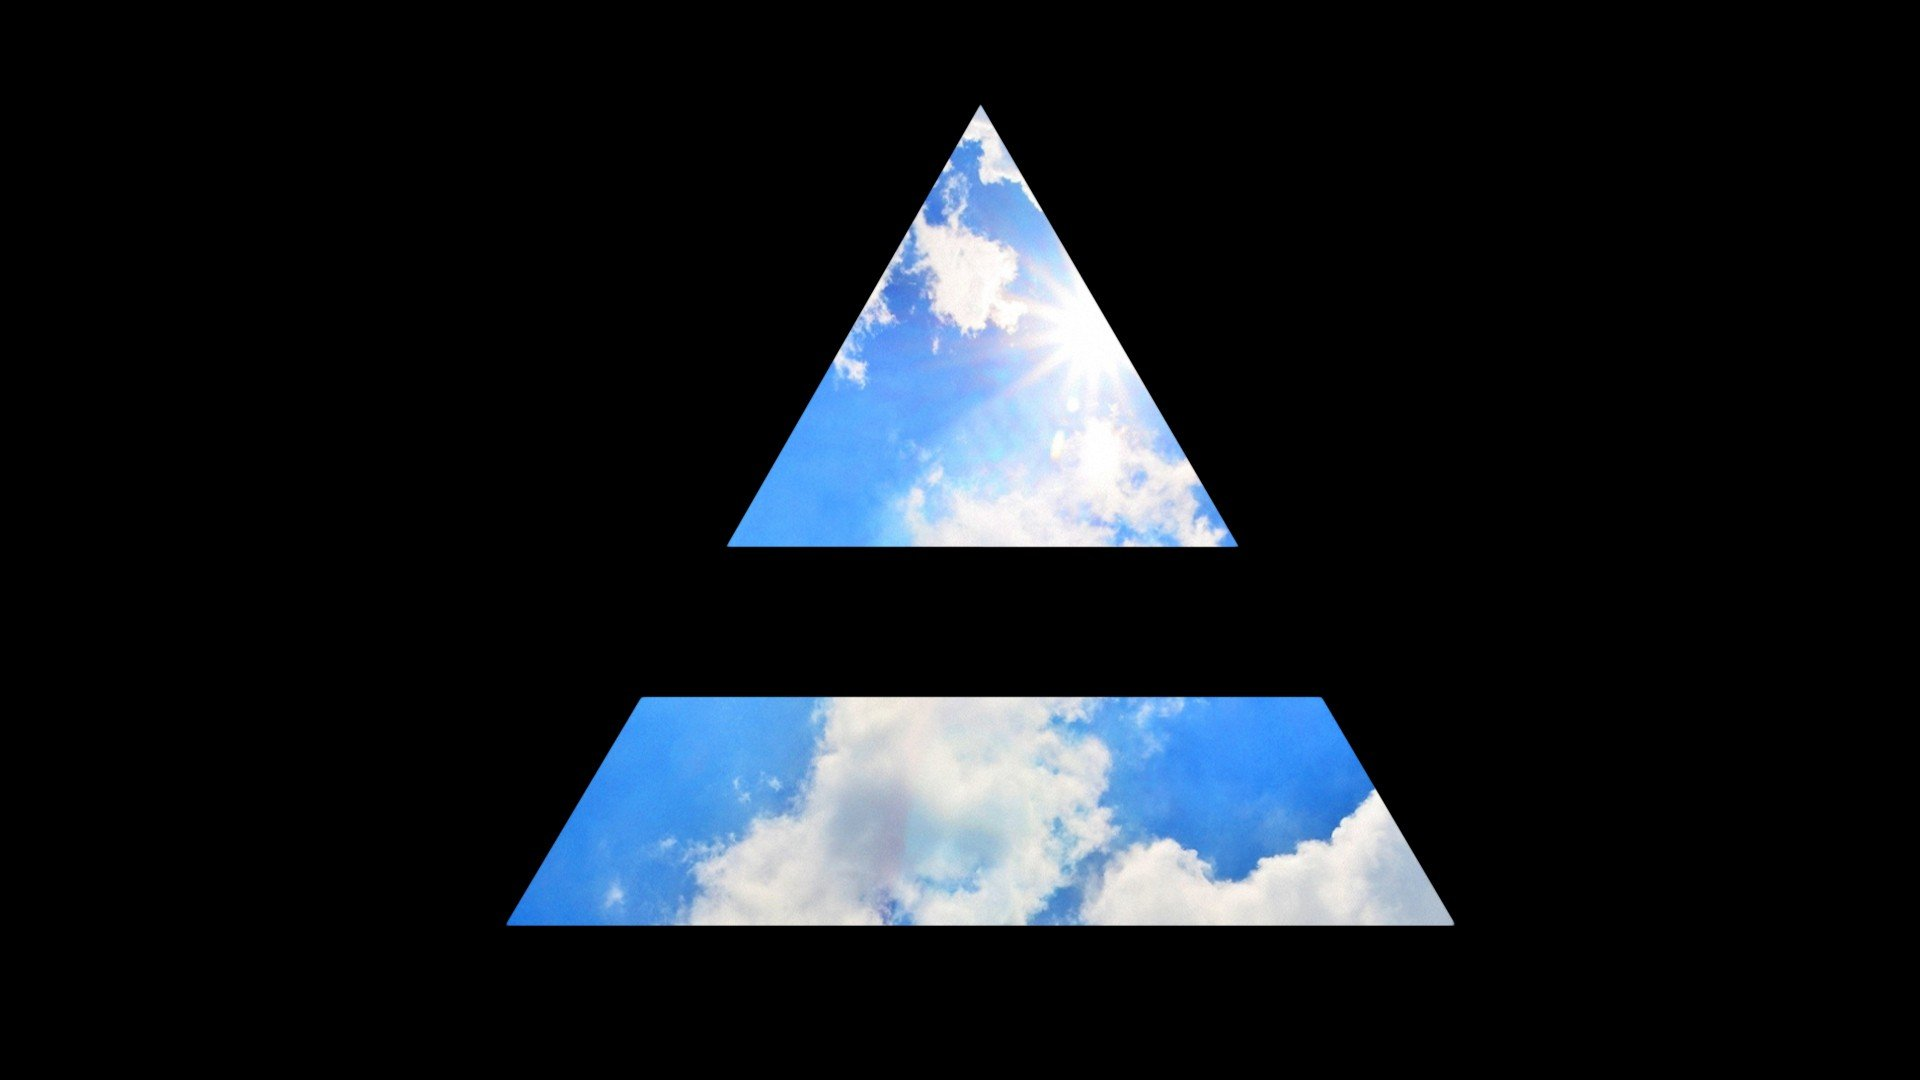 3d Pyramid Wallpaper Thirty Seconds To Mars 30 Seconds To Mars Jared Leto